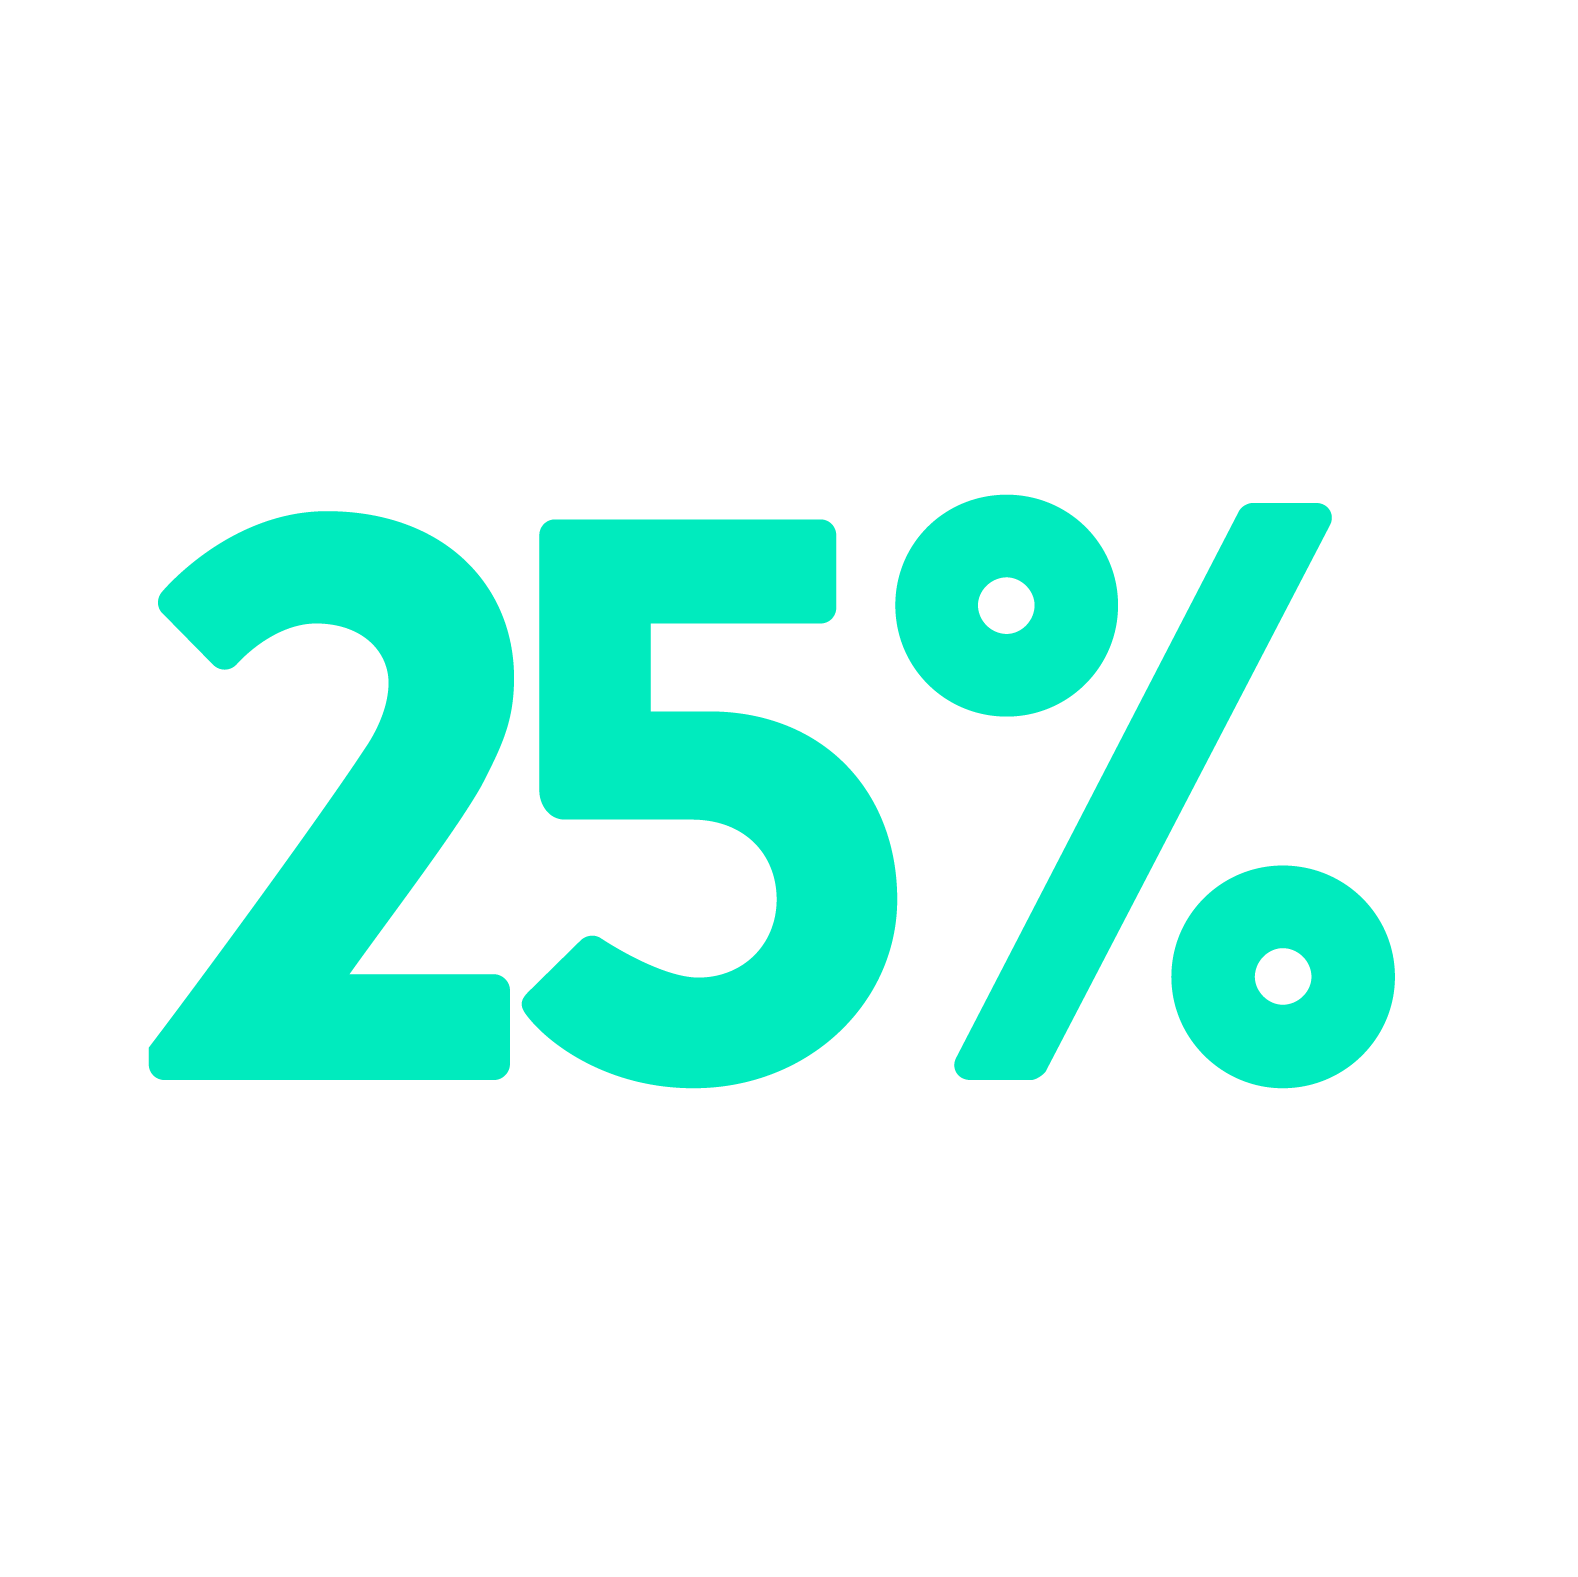 25%@2x.png